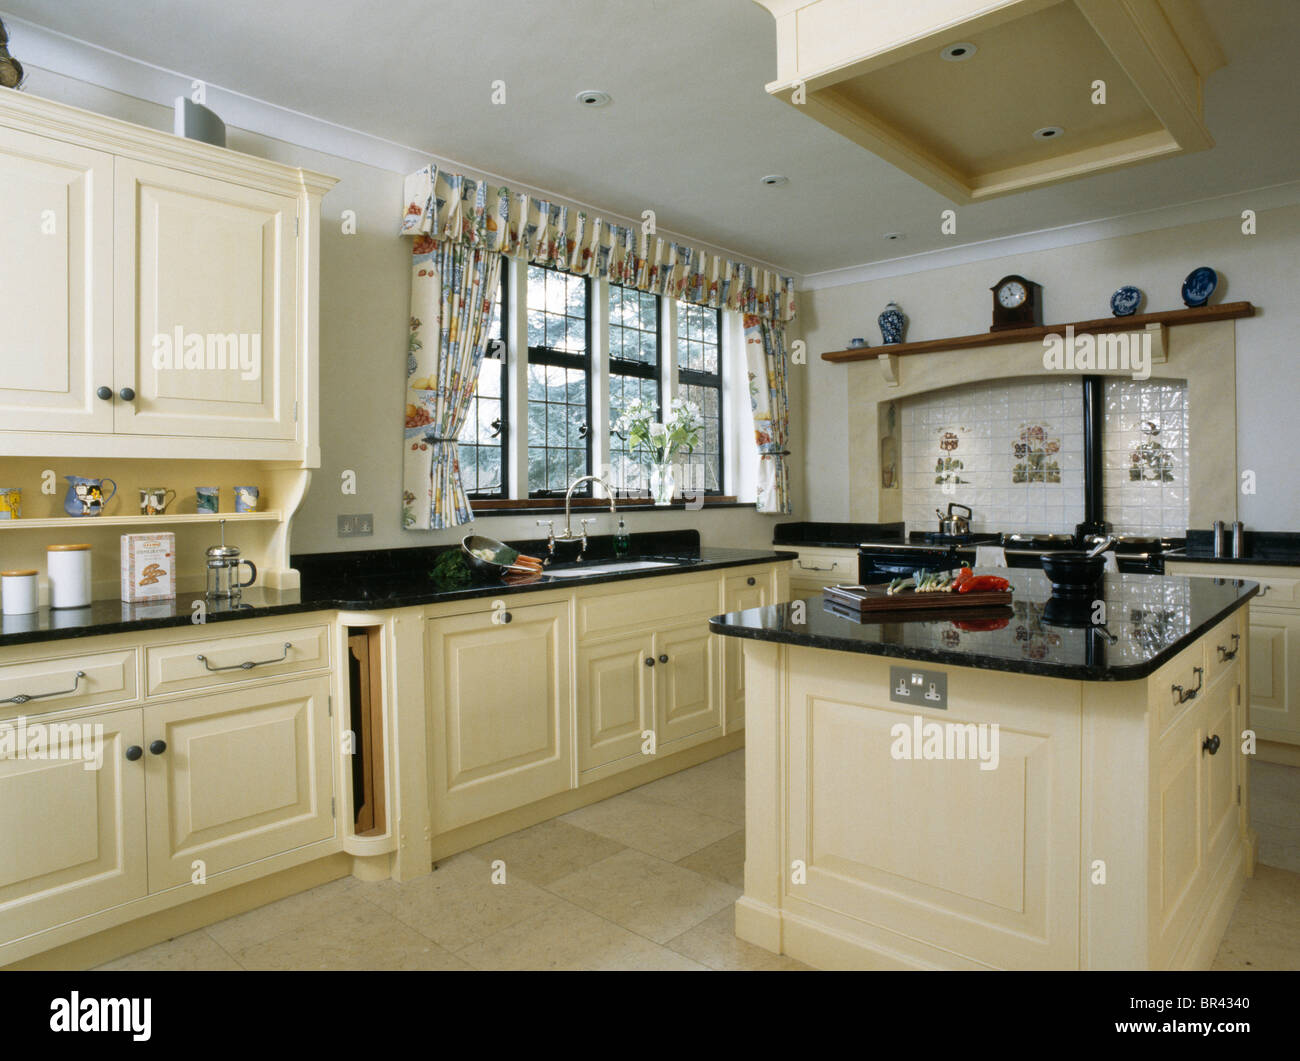 cream fitted island unit with granite worktop in large white countrycream fitted island unit with granite worktop in large white country kitchen with floral curtains at the window